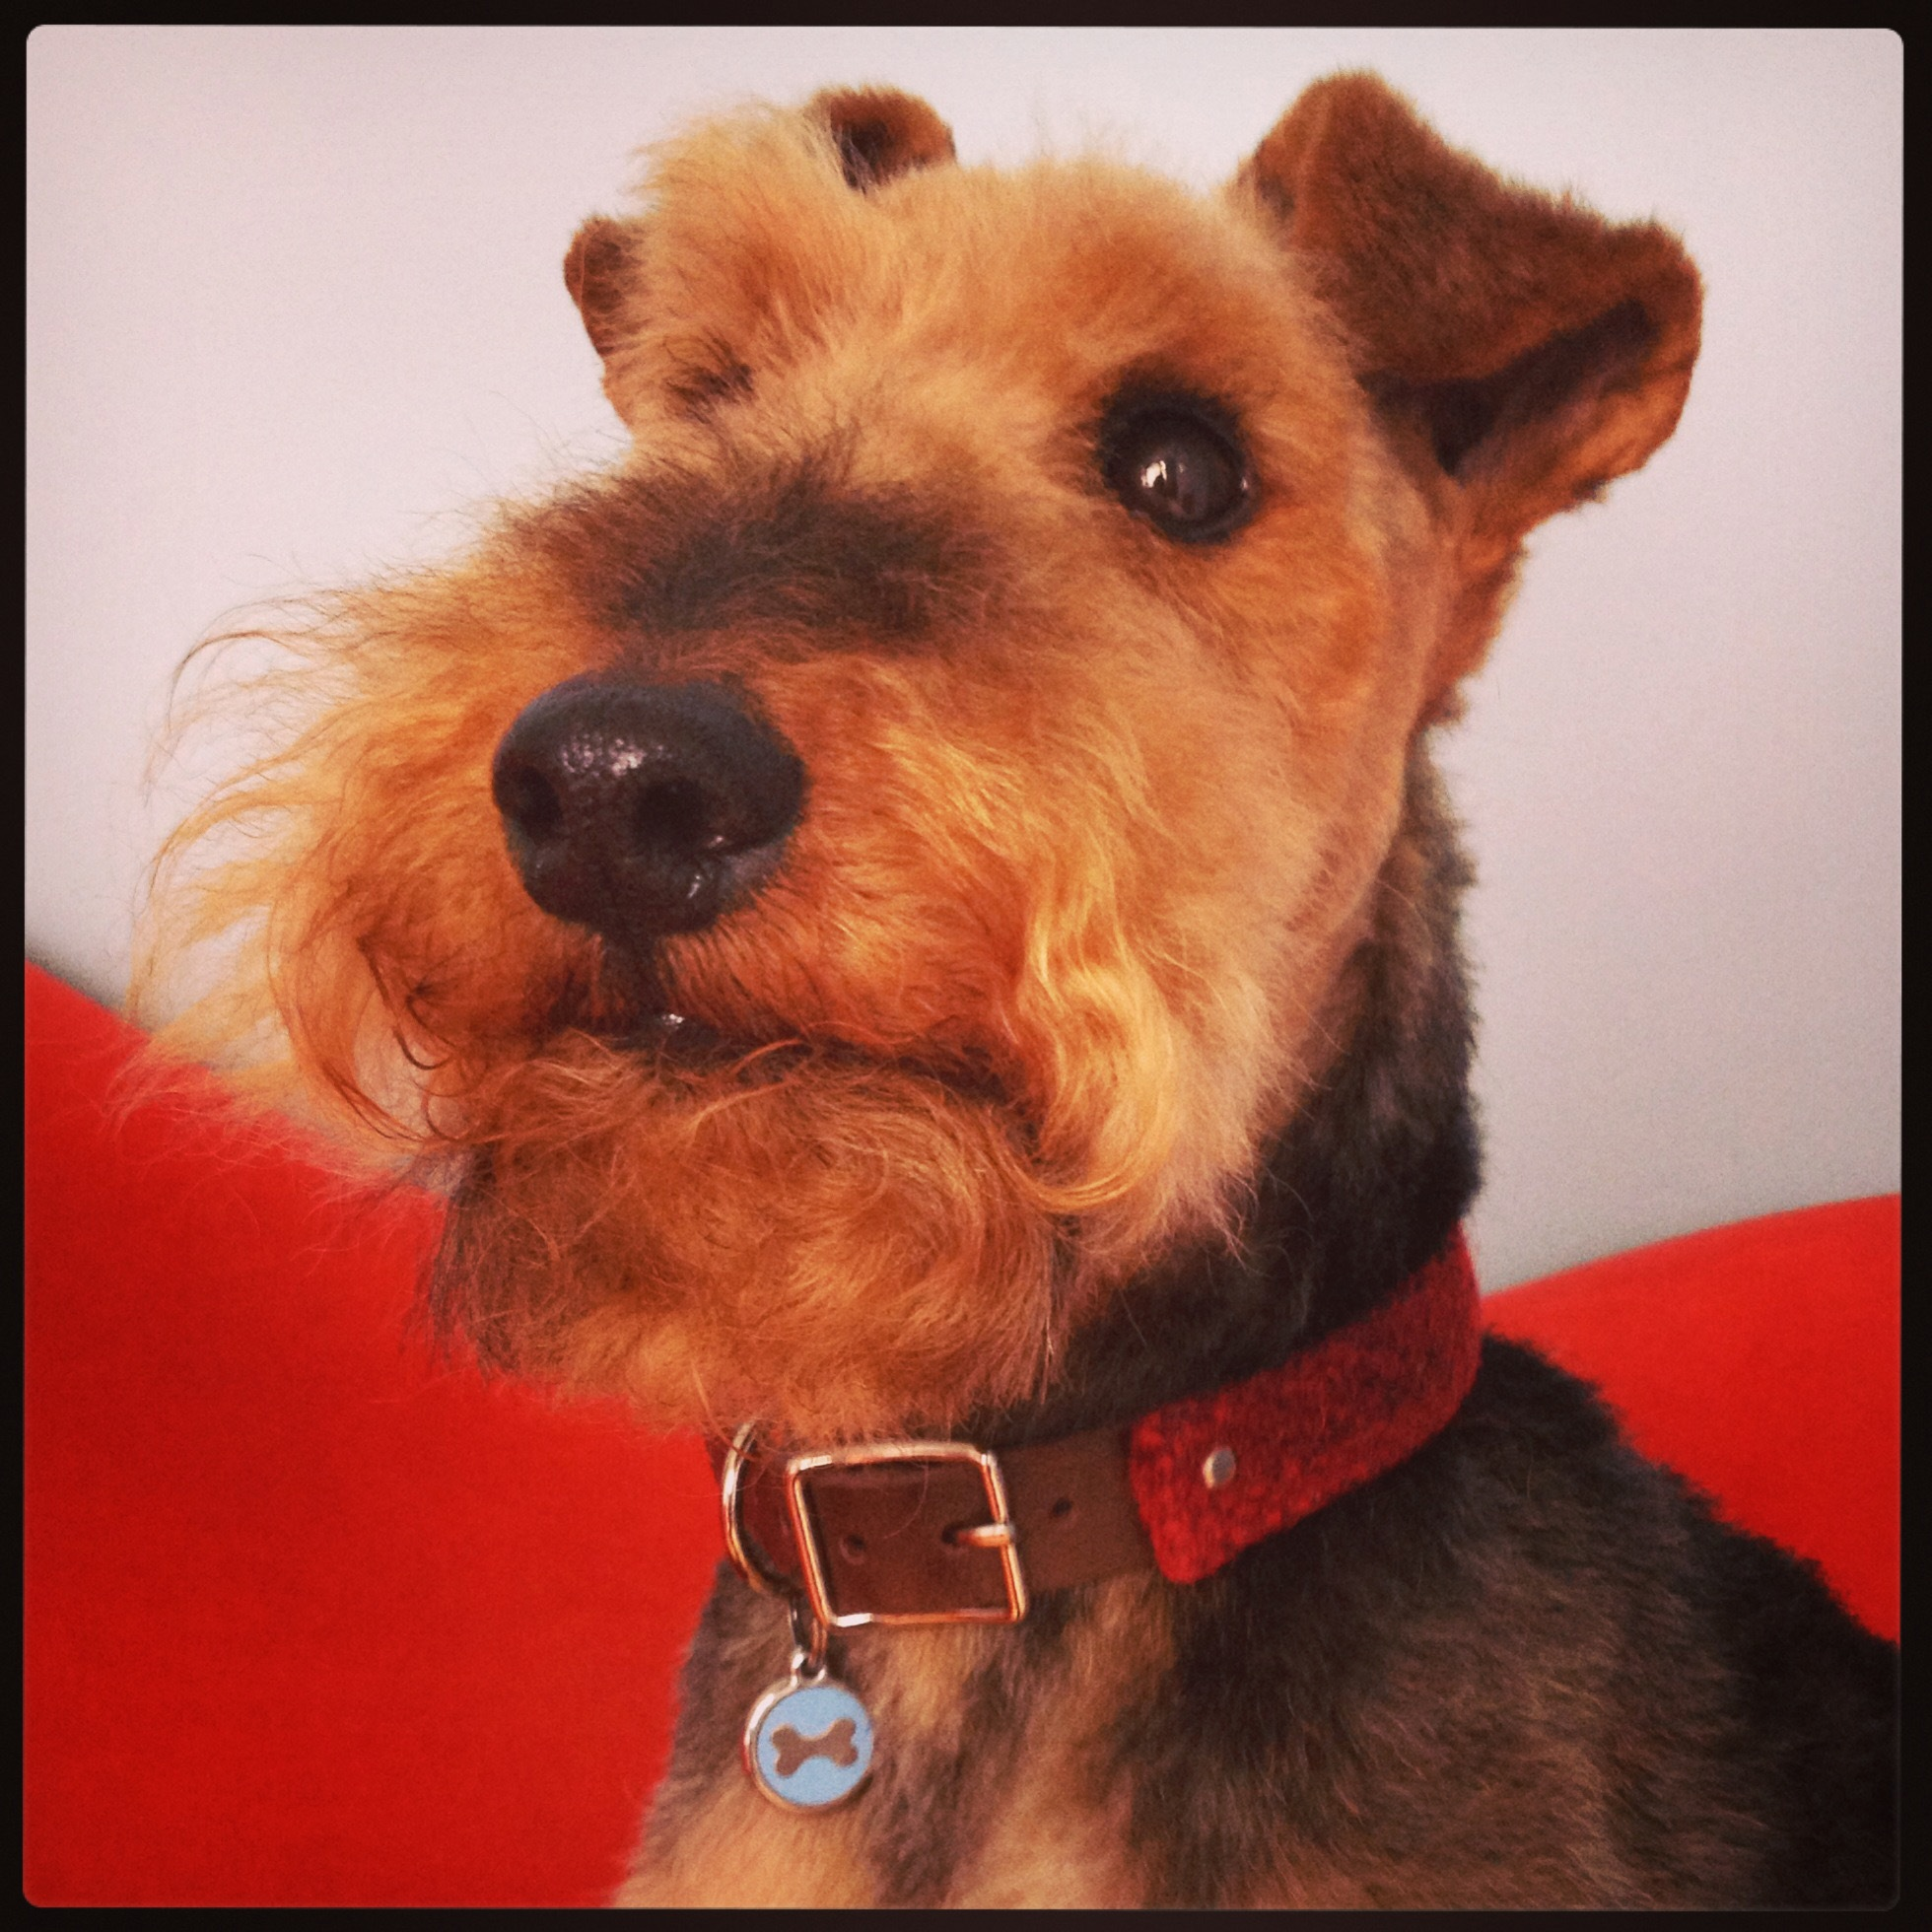 Noodles modelling his Red check Harris Tweed and leather collar